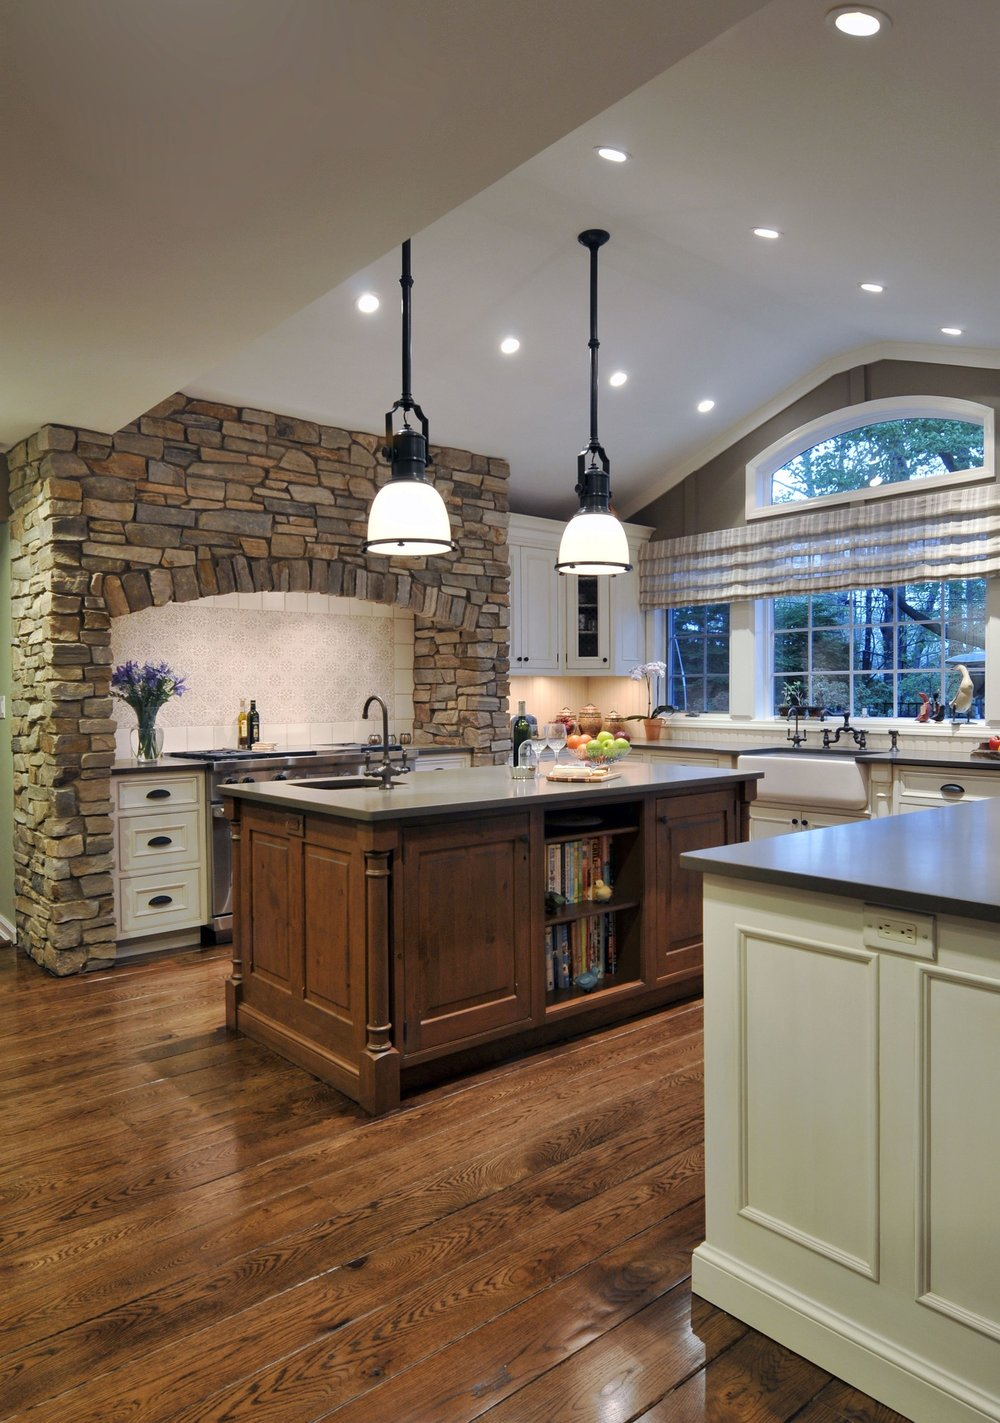 Traditional style kitchen with high ceiling and warm light setting